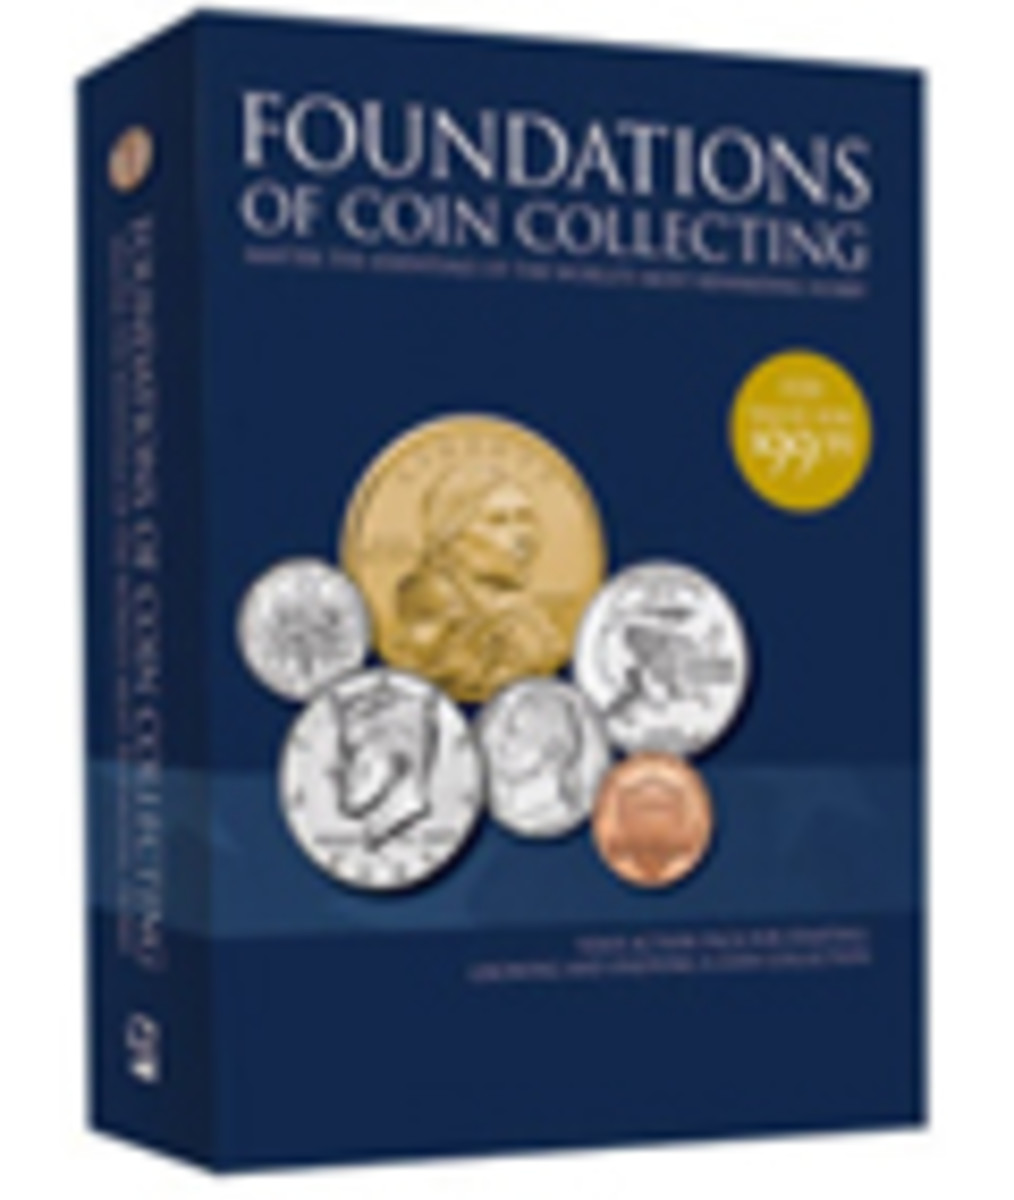 Foundations of Coin Collecting Master Box